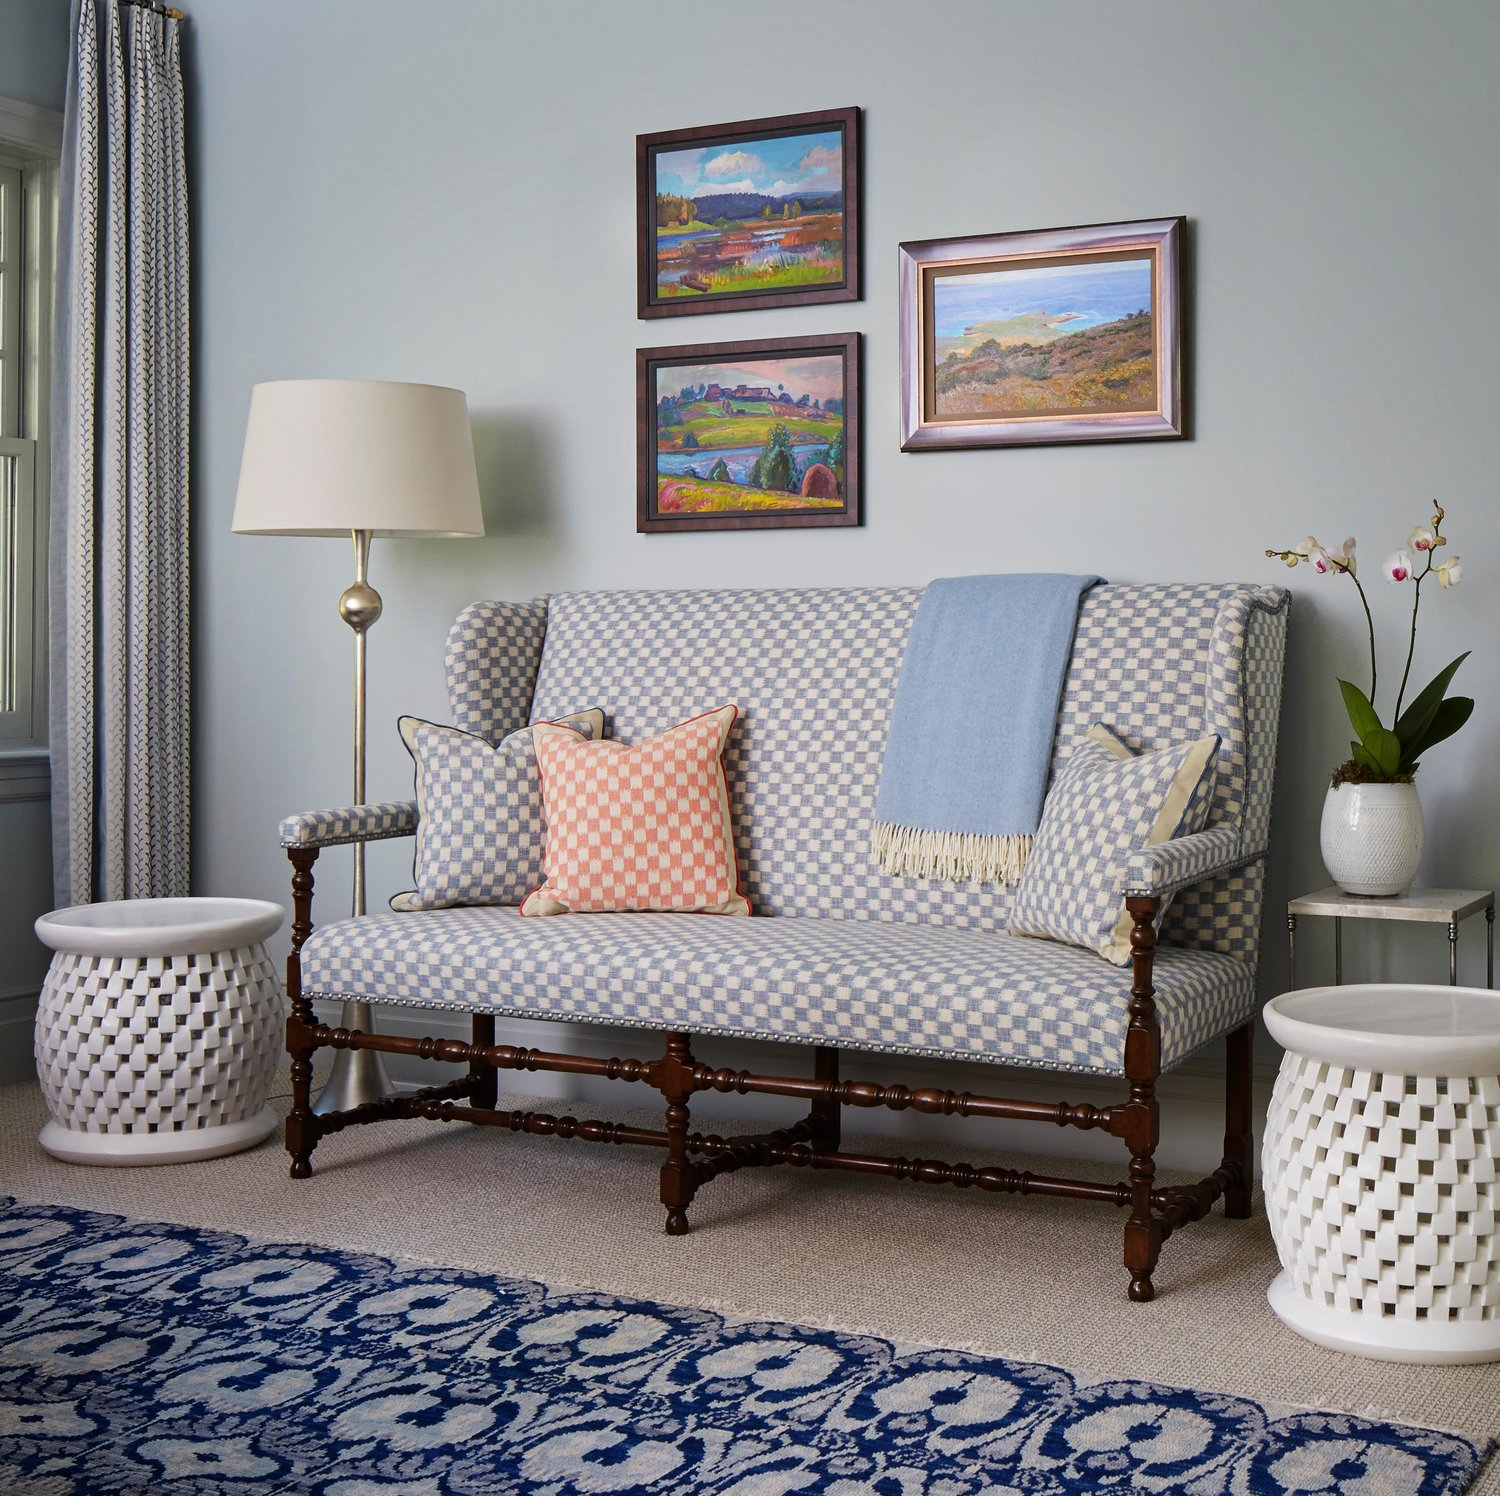 Charming check on a settee in a blue bedroom. Come see more interior design inspiration from Elizabeth Drake. Photo by Werner Straube. #interiordesign #classicdesign #traditionaldecor #housetour #elizabethdrake